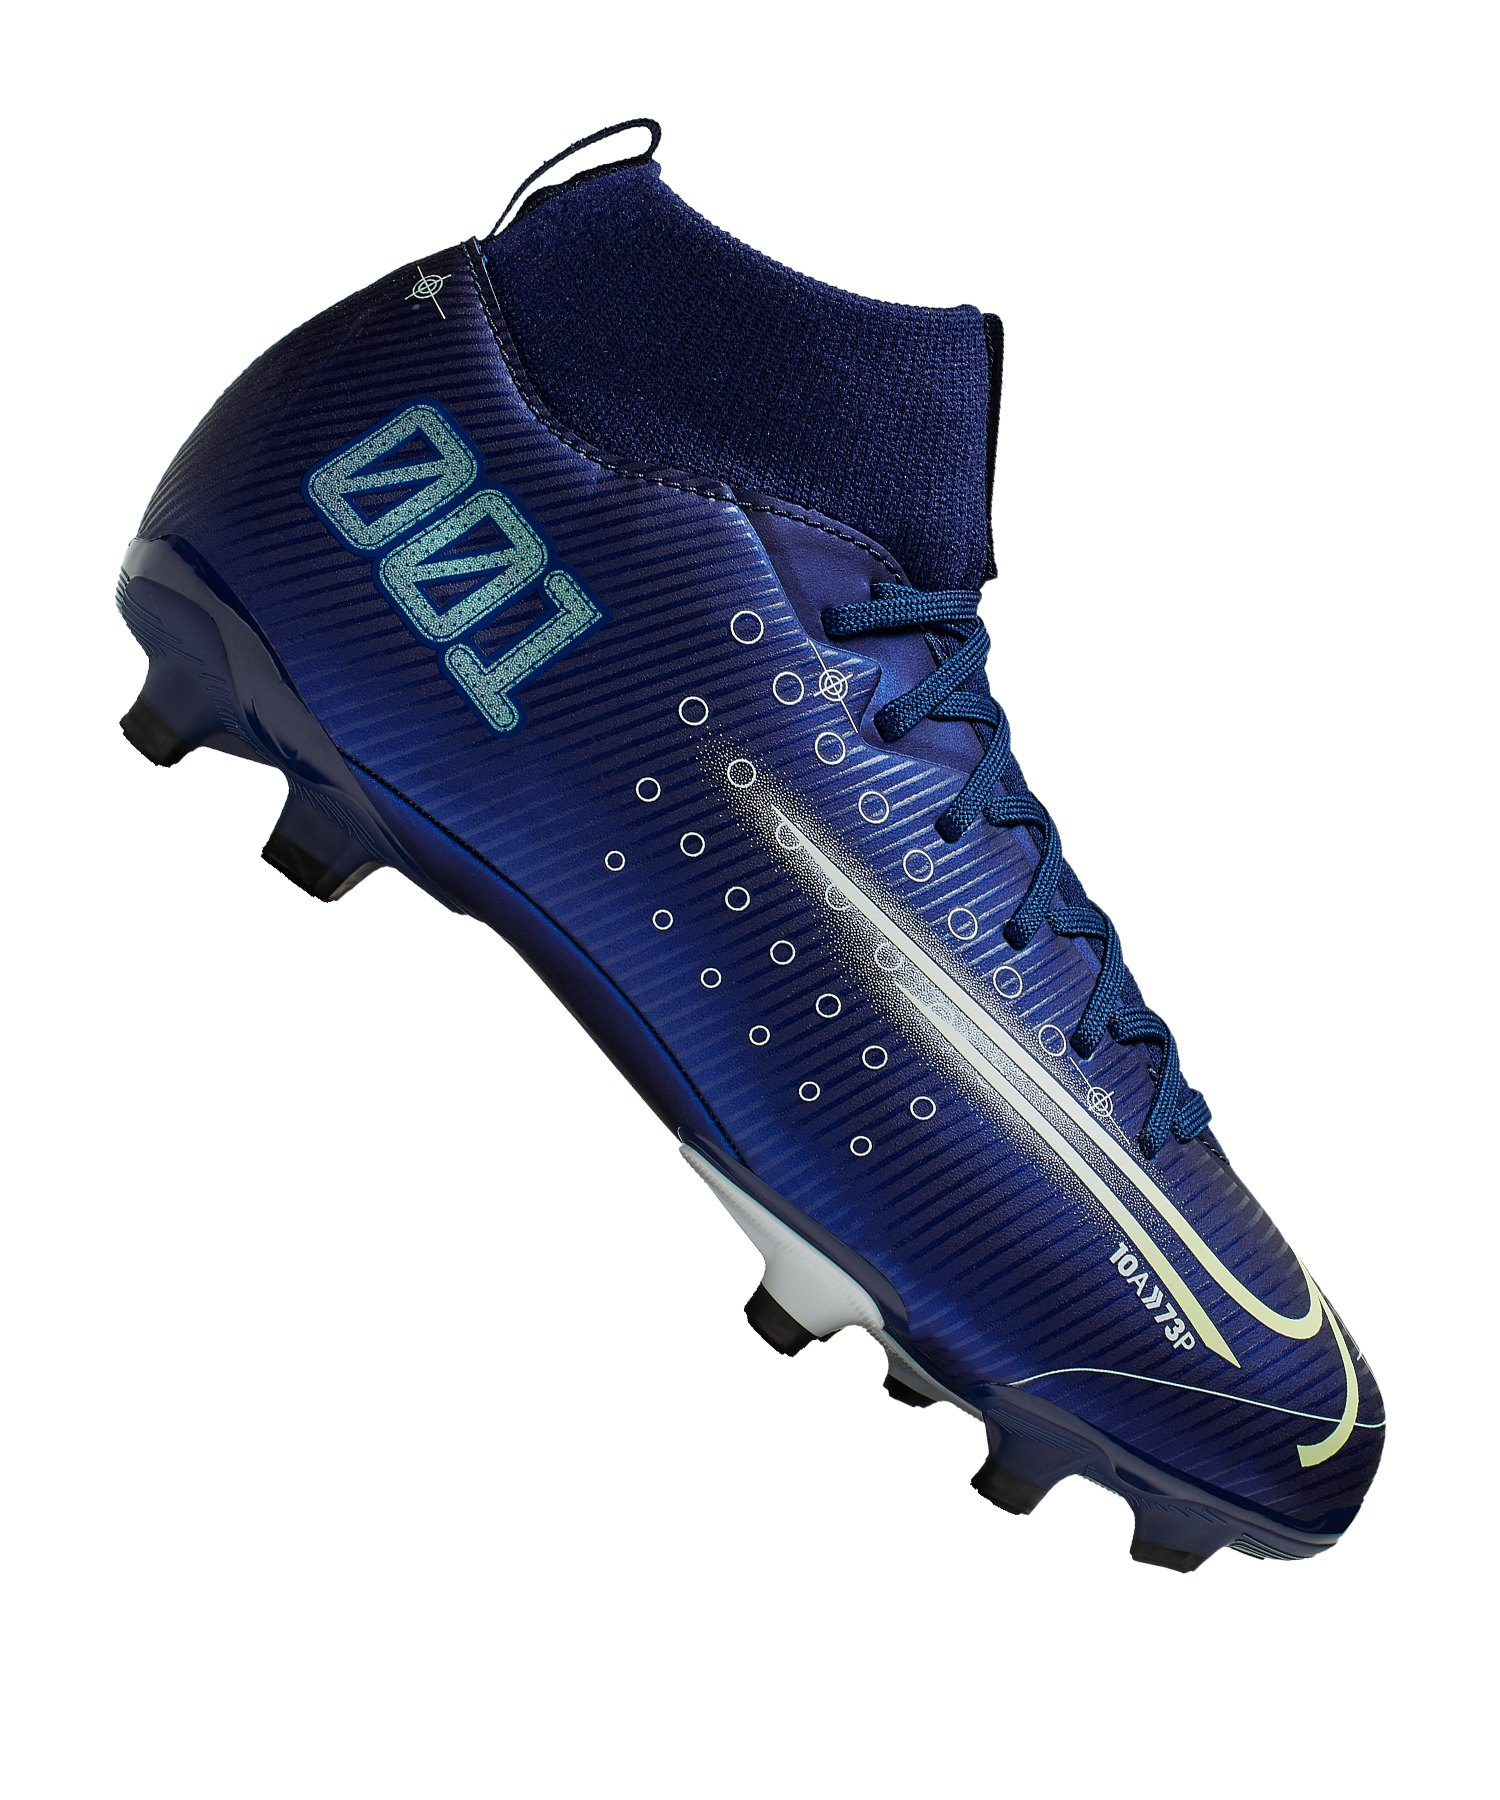 Nike Jr Mercurial Superfly VII Dreamspeed Academy FG Kids Blau F401 - blau